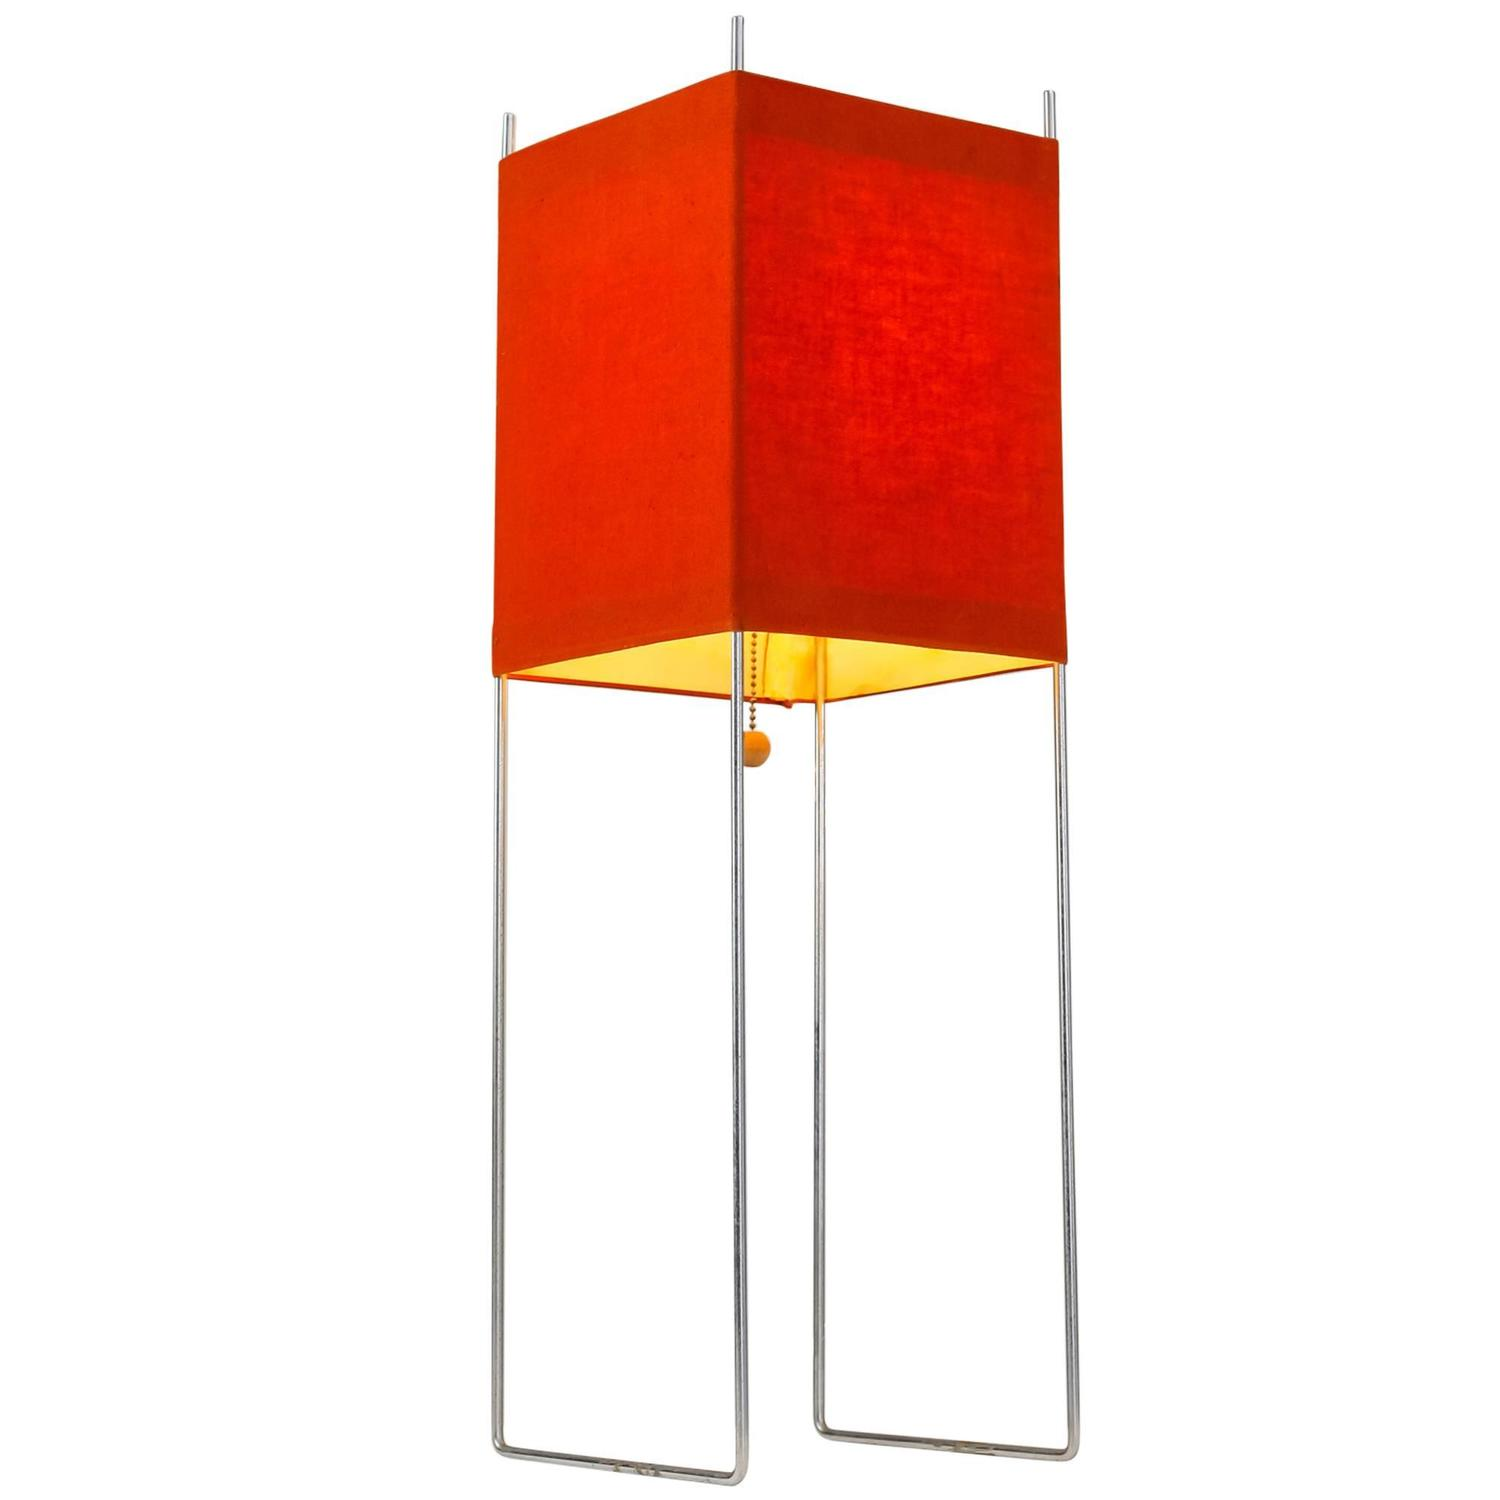 George nelson red kite table or floor lamp usa 1970s for sale at george nelson red kite table or floor lamp usa 1970s for sale at 1stdibs geotapseo Gallery